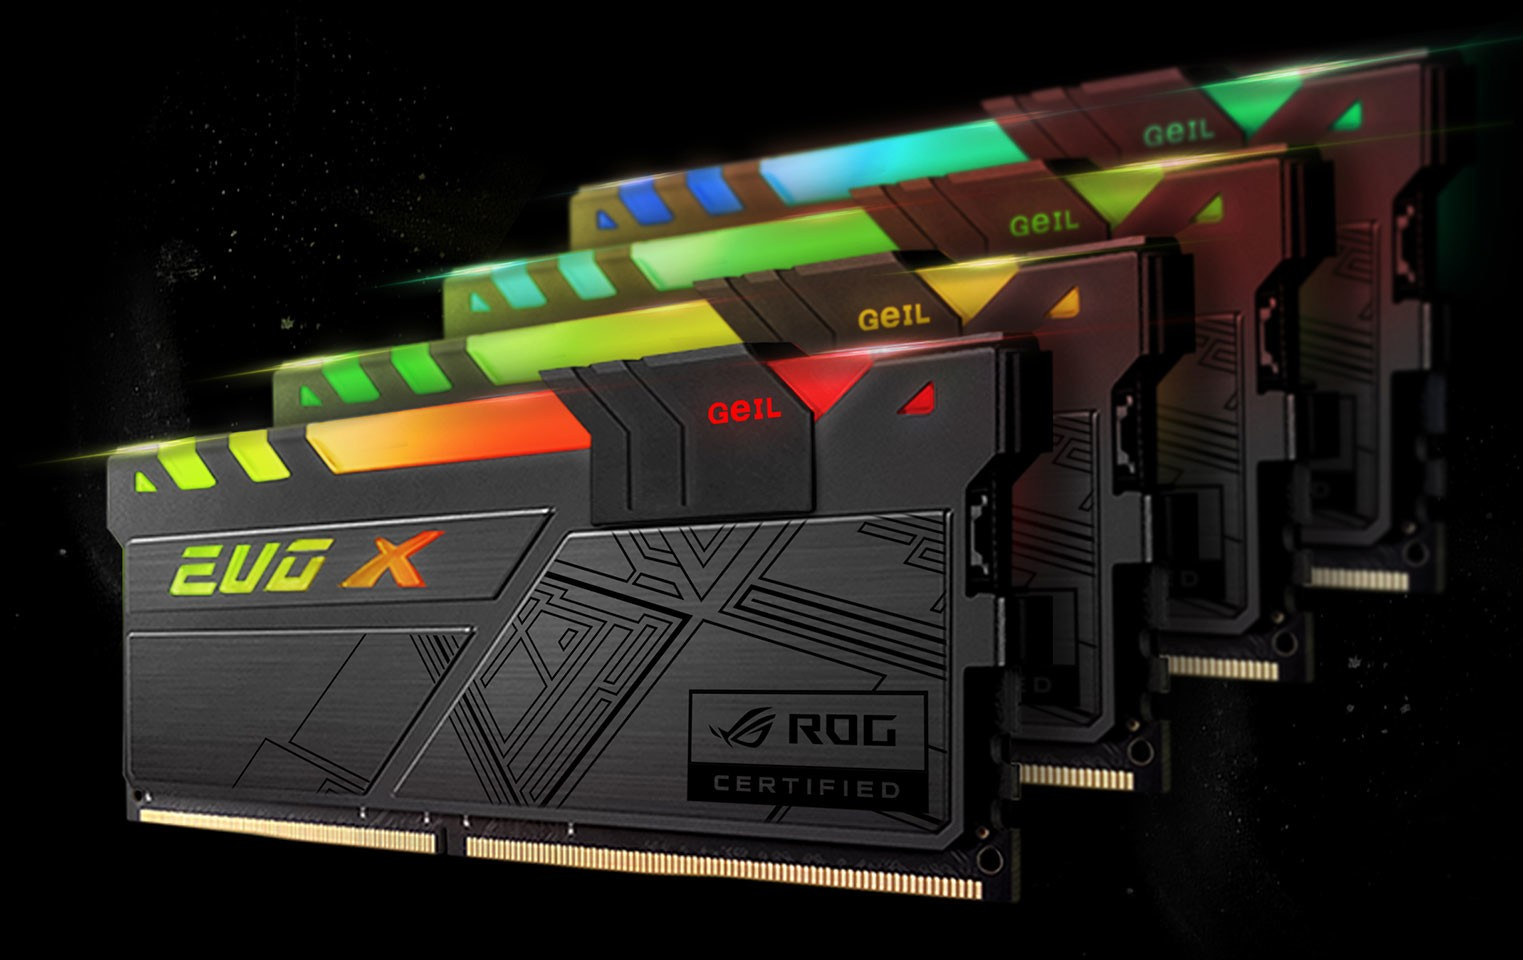 2019 Ram Hd >> GeIL Announces EVO-X RGB Memory with ASUS ROG Certification